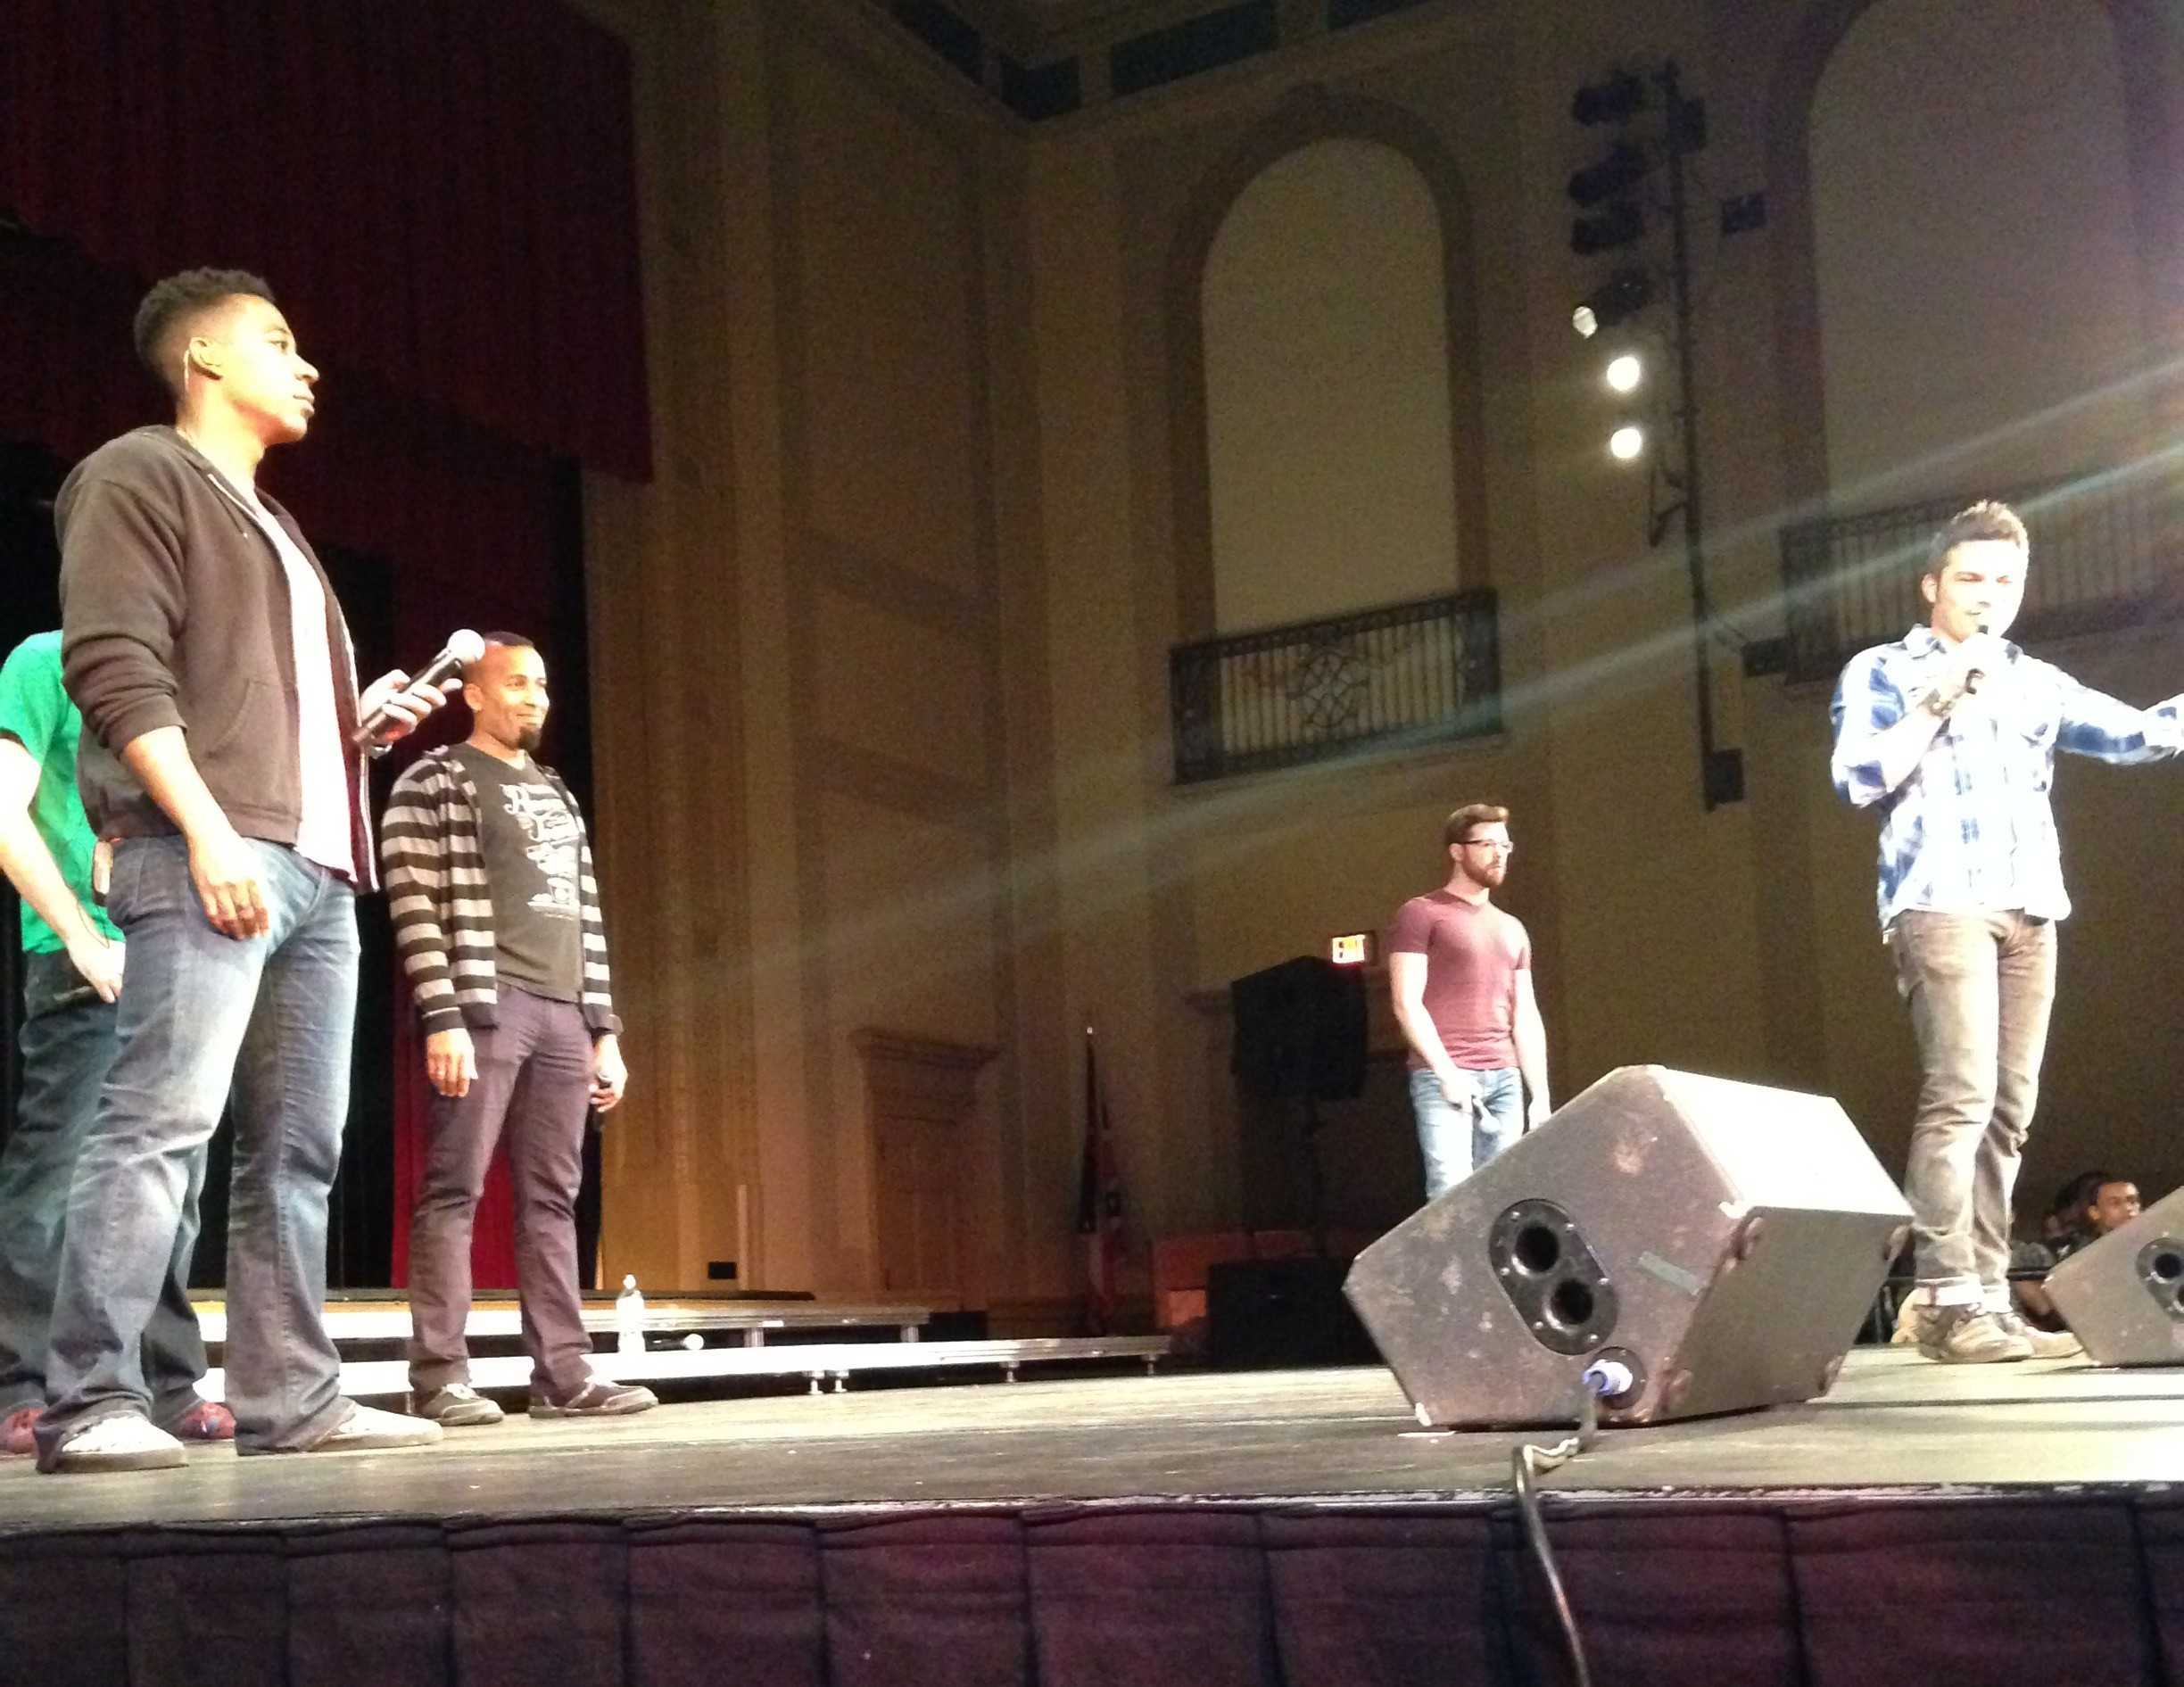 The House Jacks perform in the large auditorium during the second assembly period today.